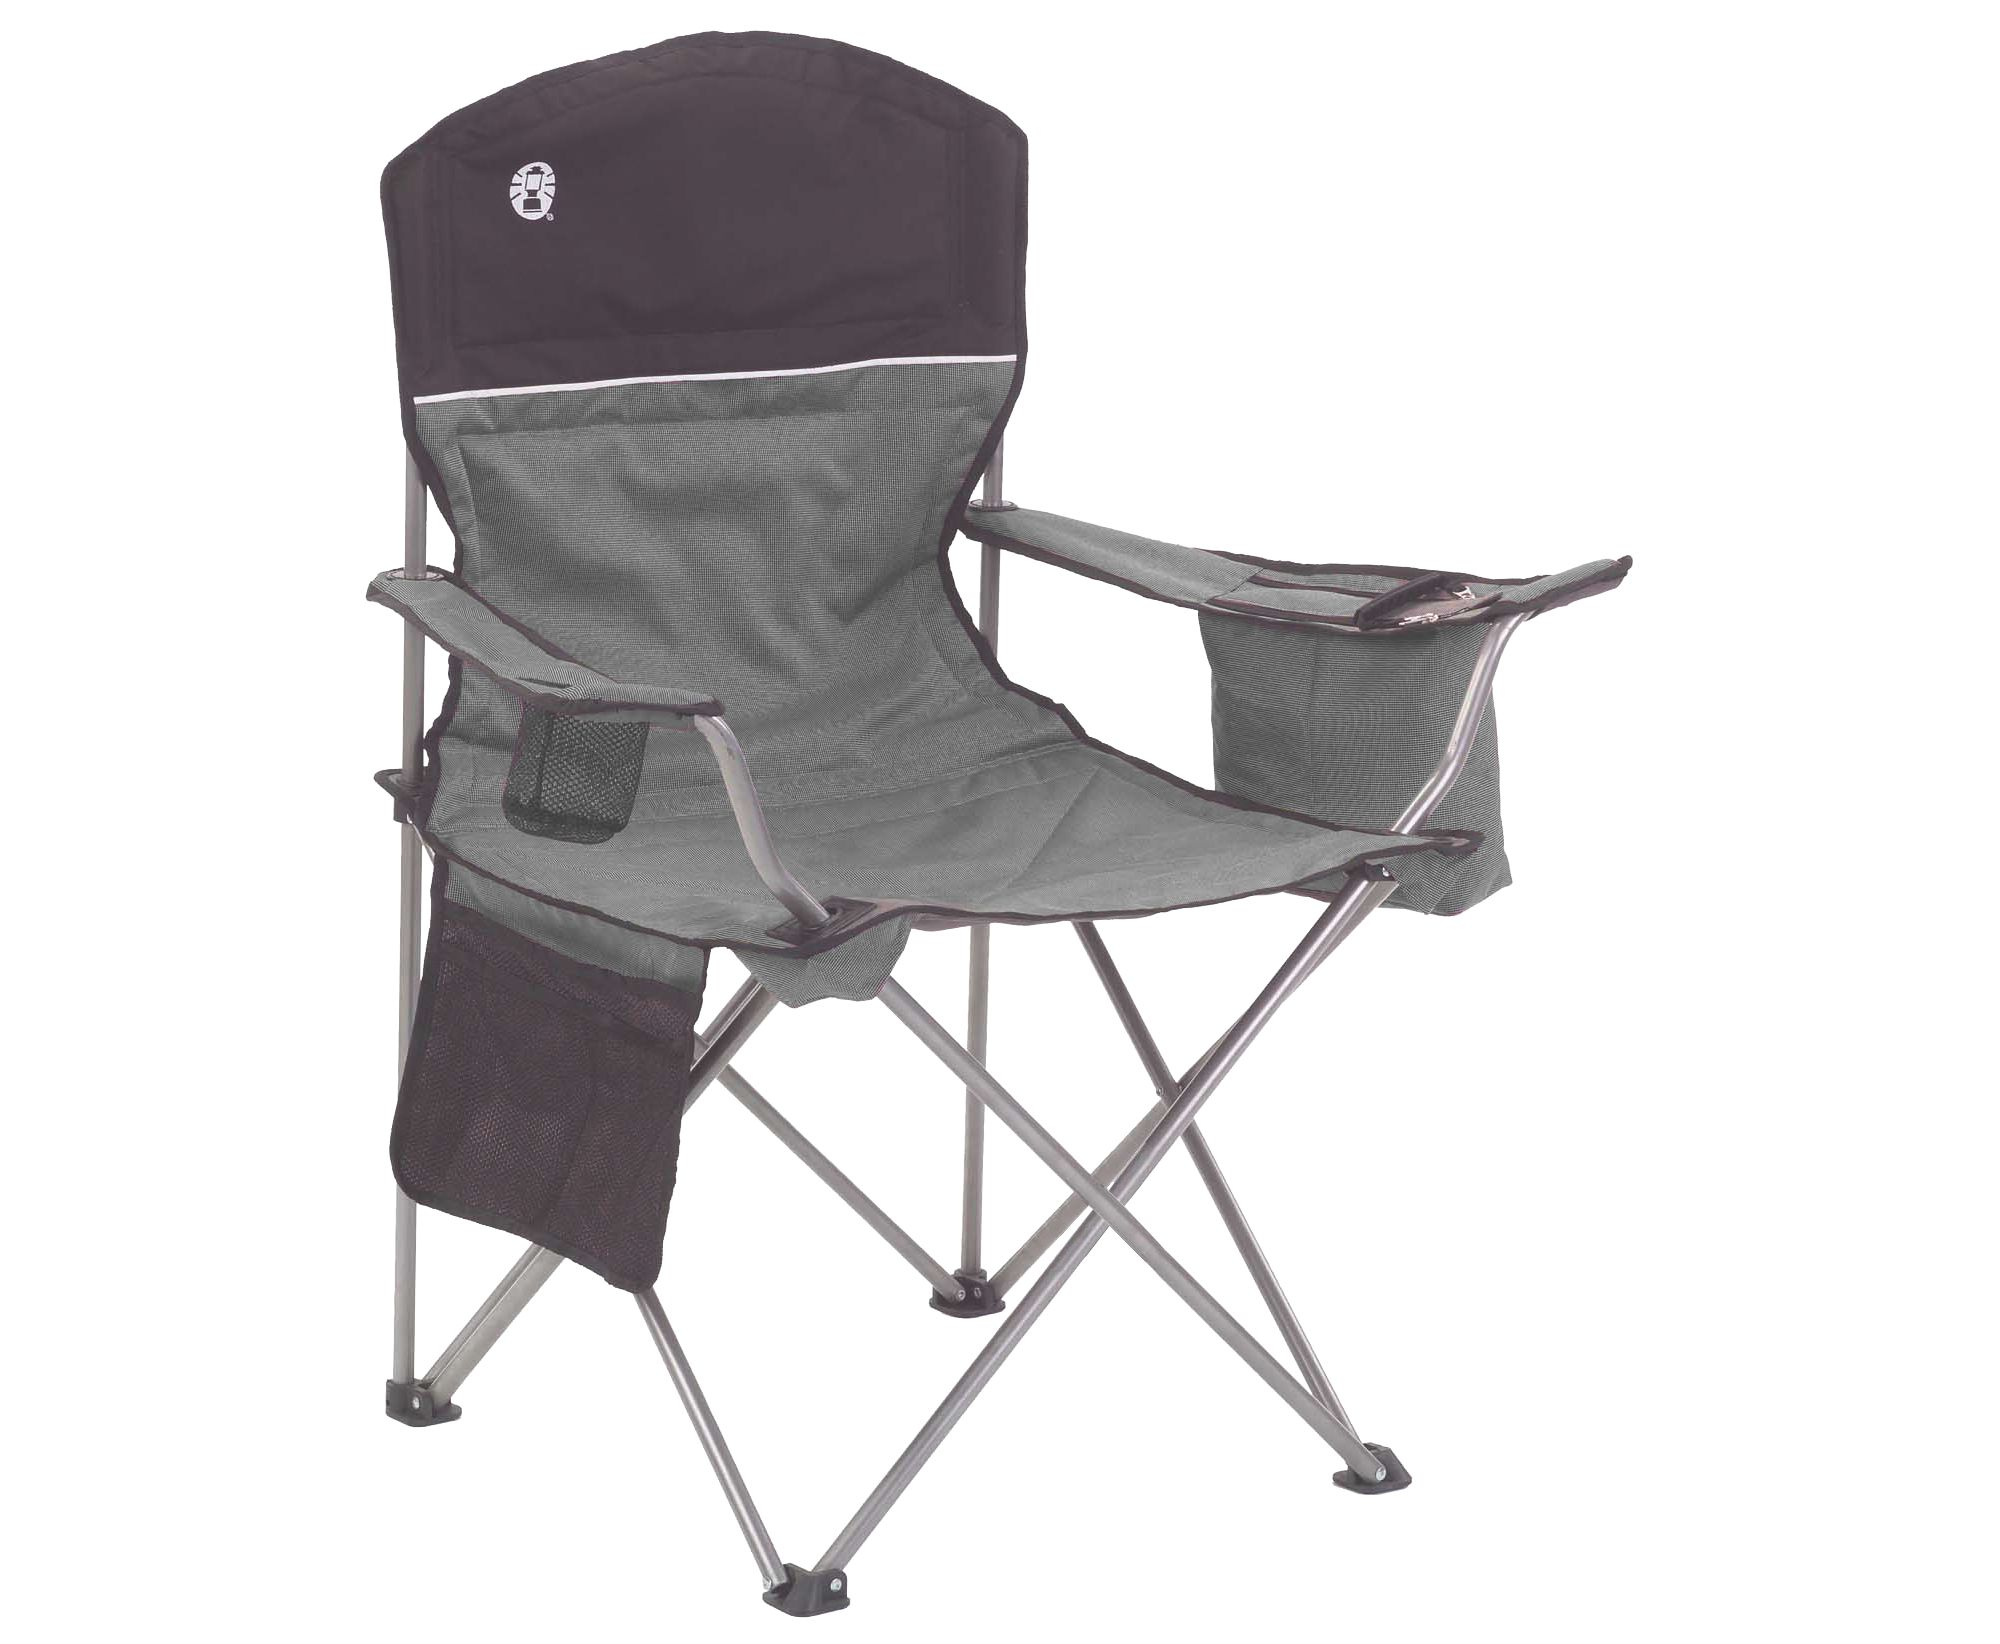 Camping Chair with Cooler Camping Chair